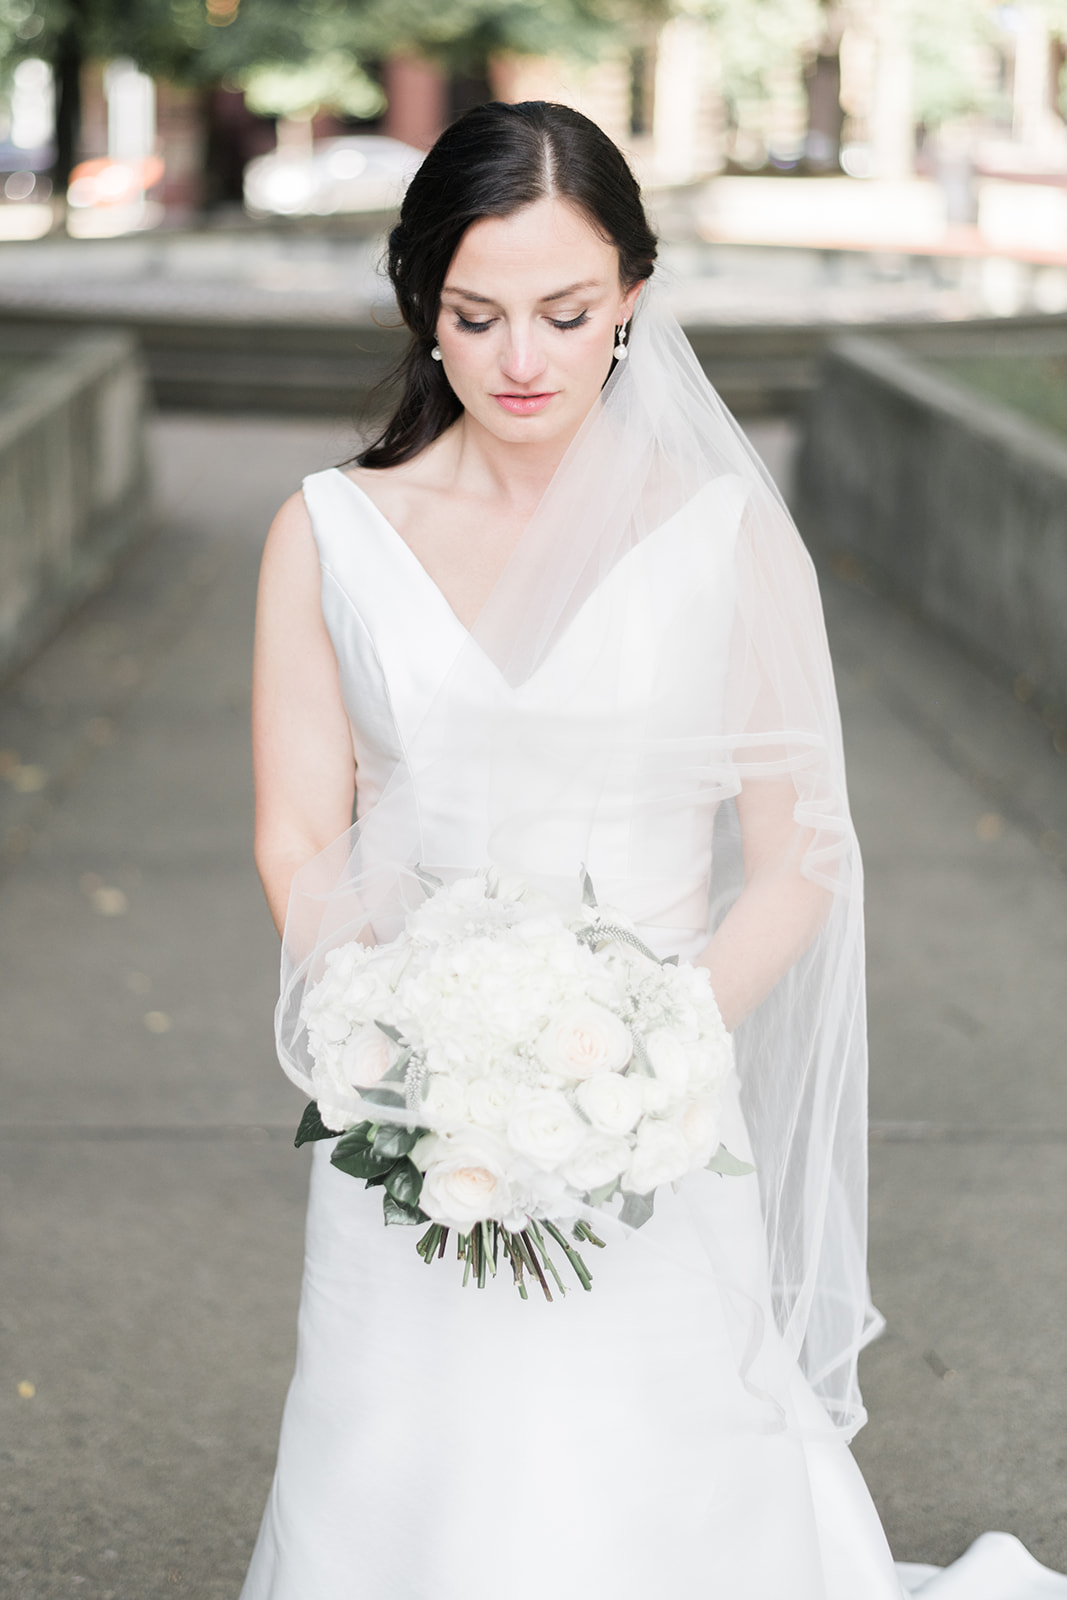 Bride poses for wedding photo with white wedding bouquet for Pittsburgh wedding at PNC Park planned by Exhale Events. Find more wedding inspiration at exhale-events.com!